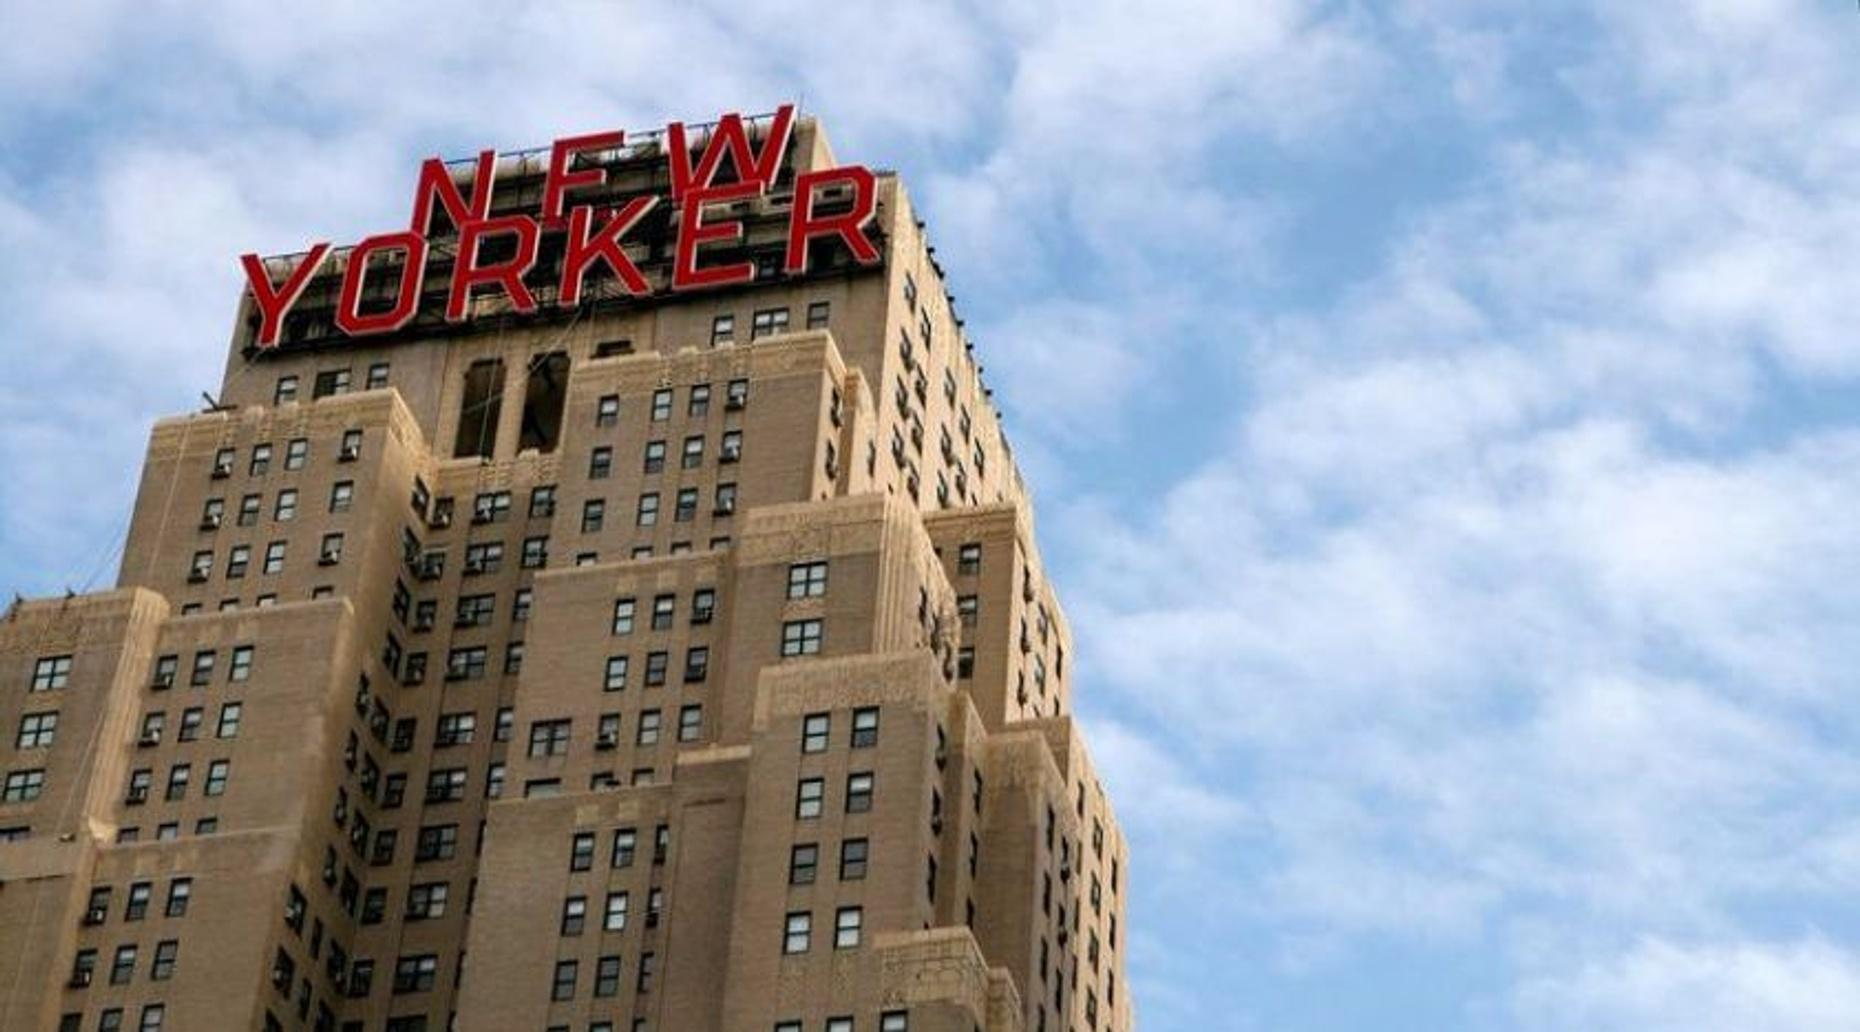 Behind-the-Scenes Tour of the New Yorker Hotel